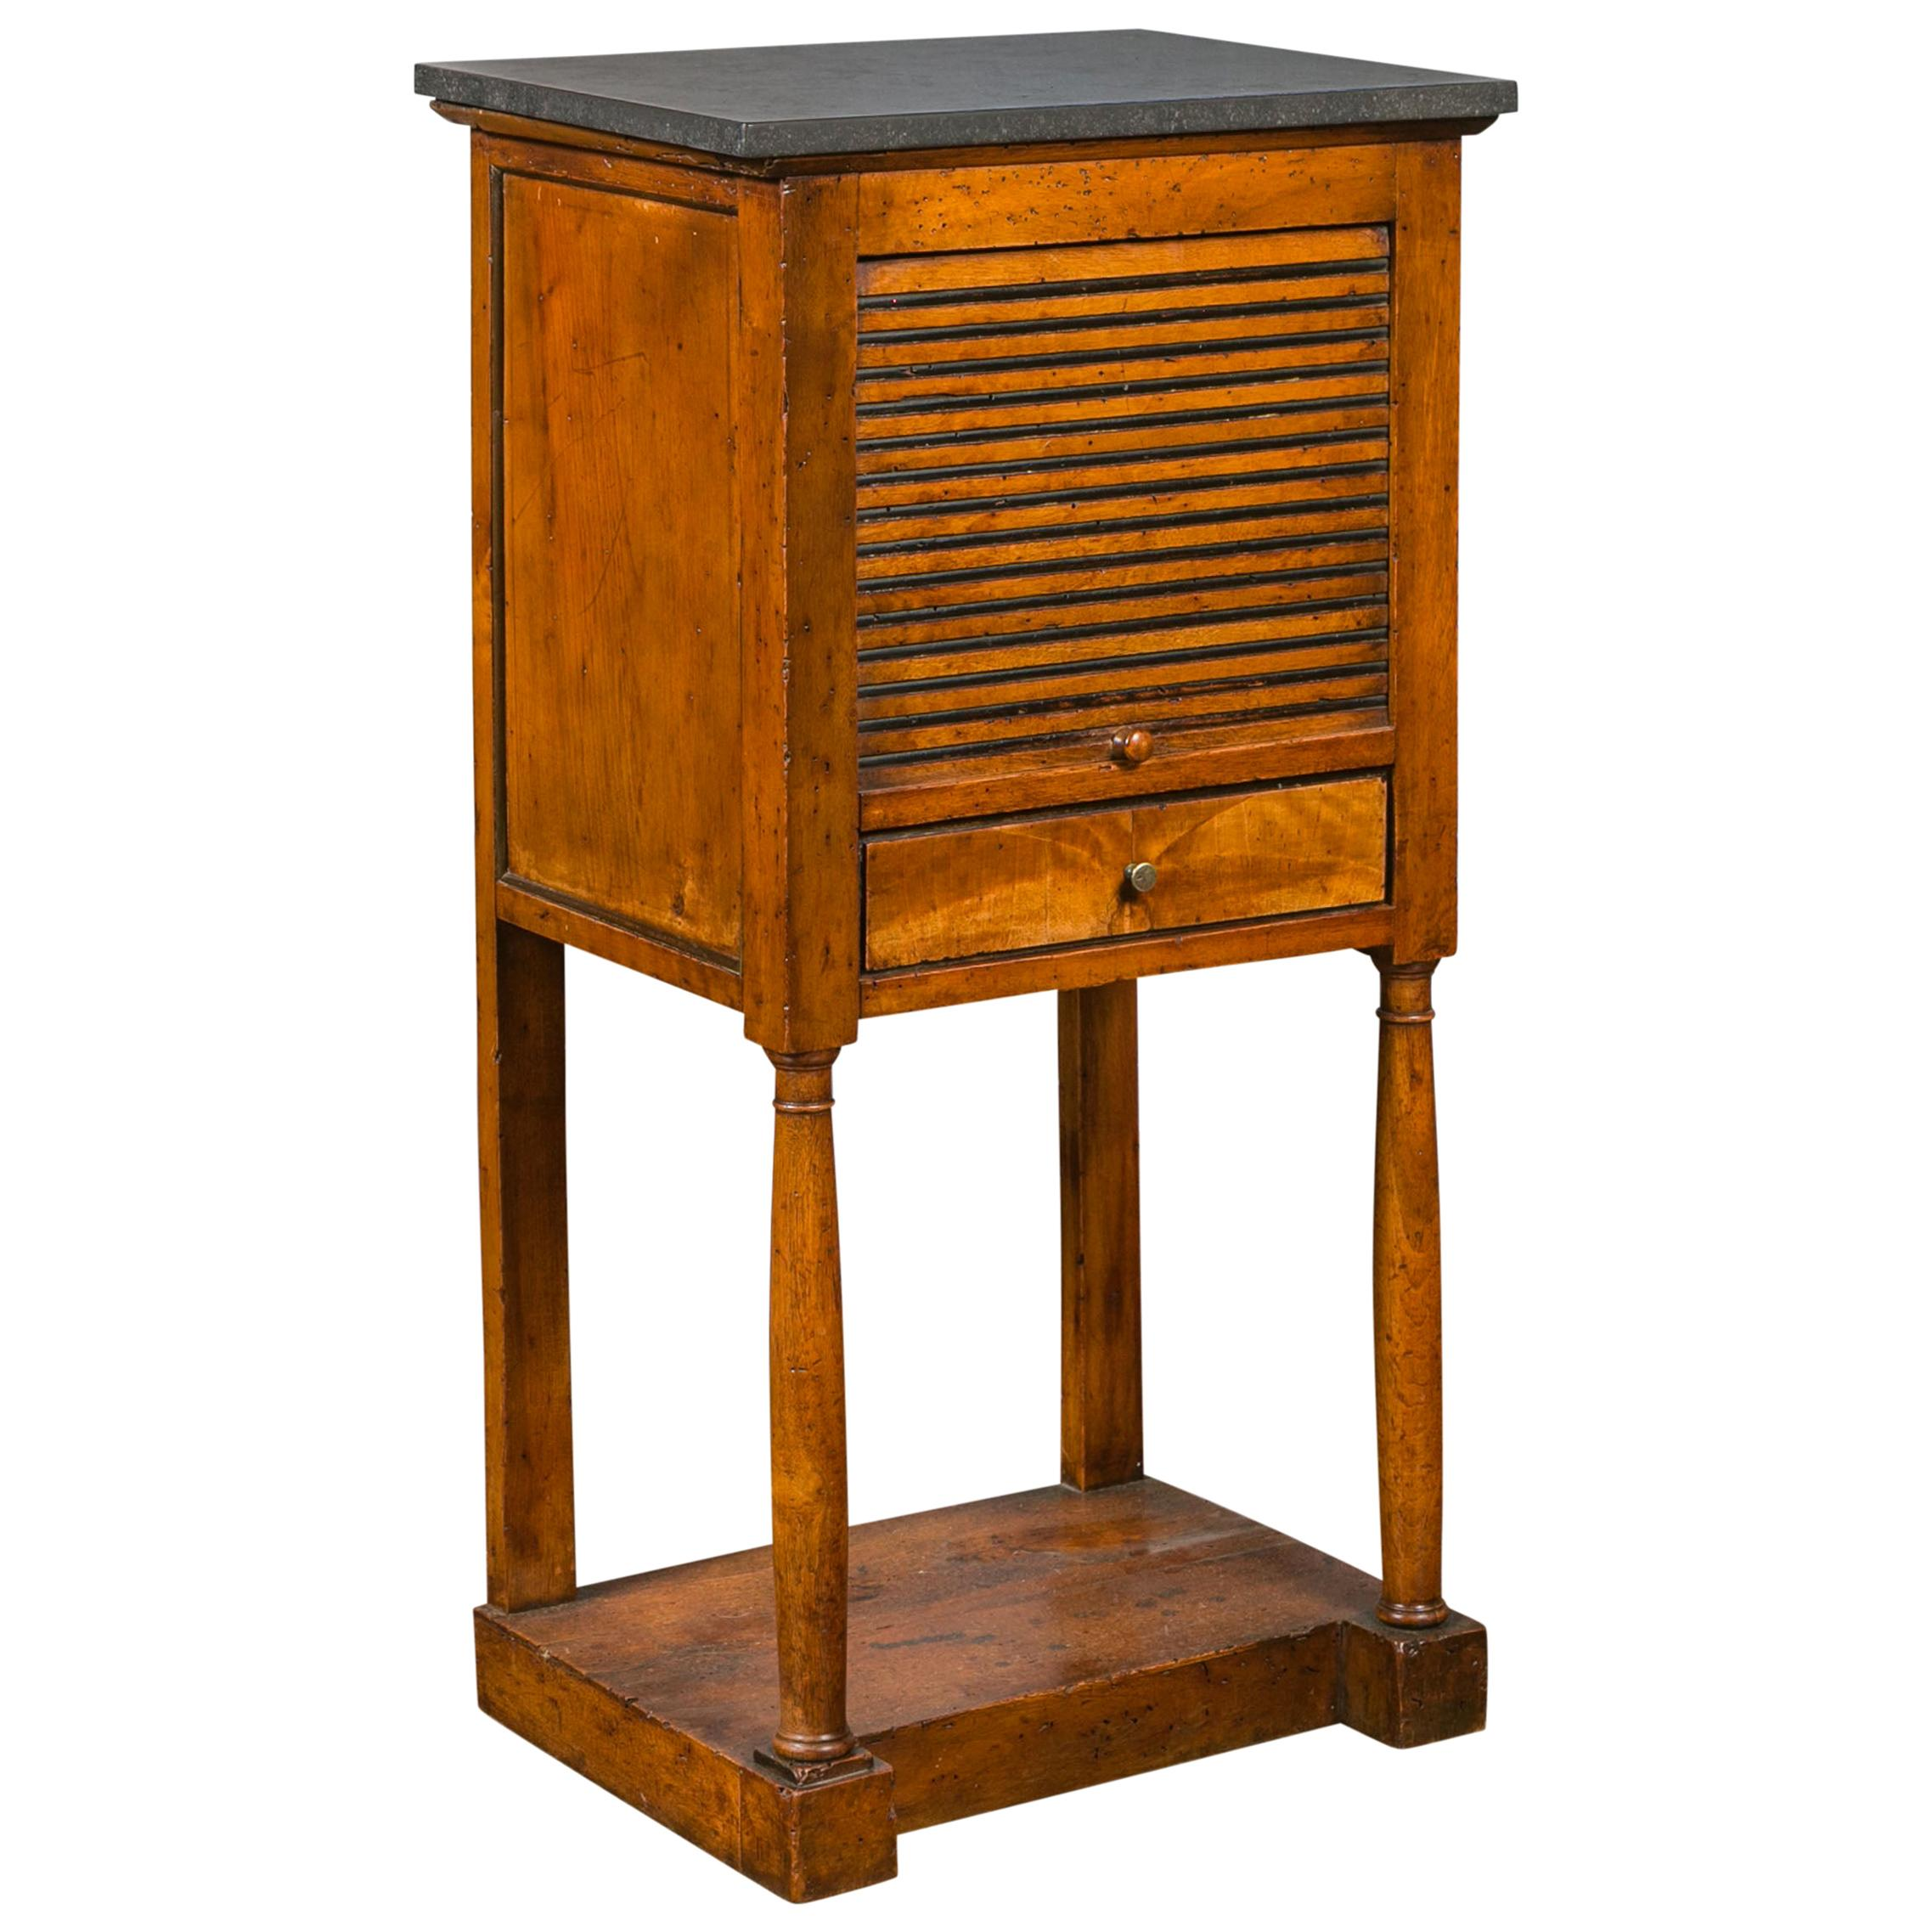 French 1870s Napoleon III Walnut Bedside Table with Stone Top and Tambour Door